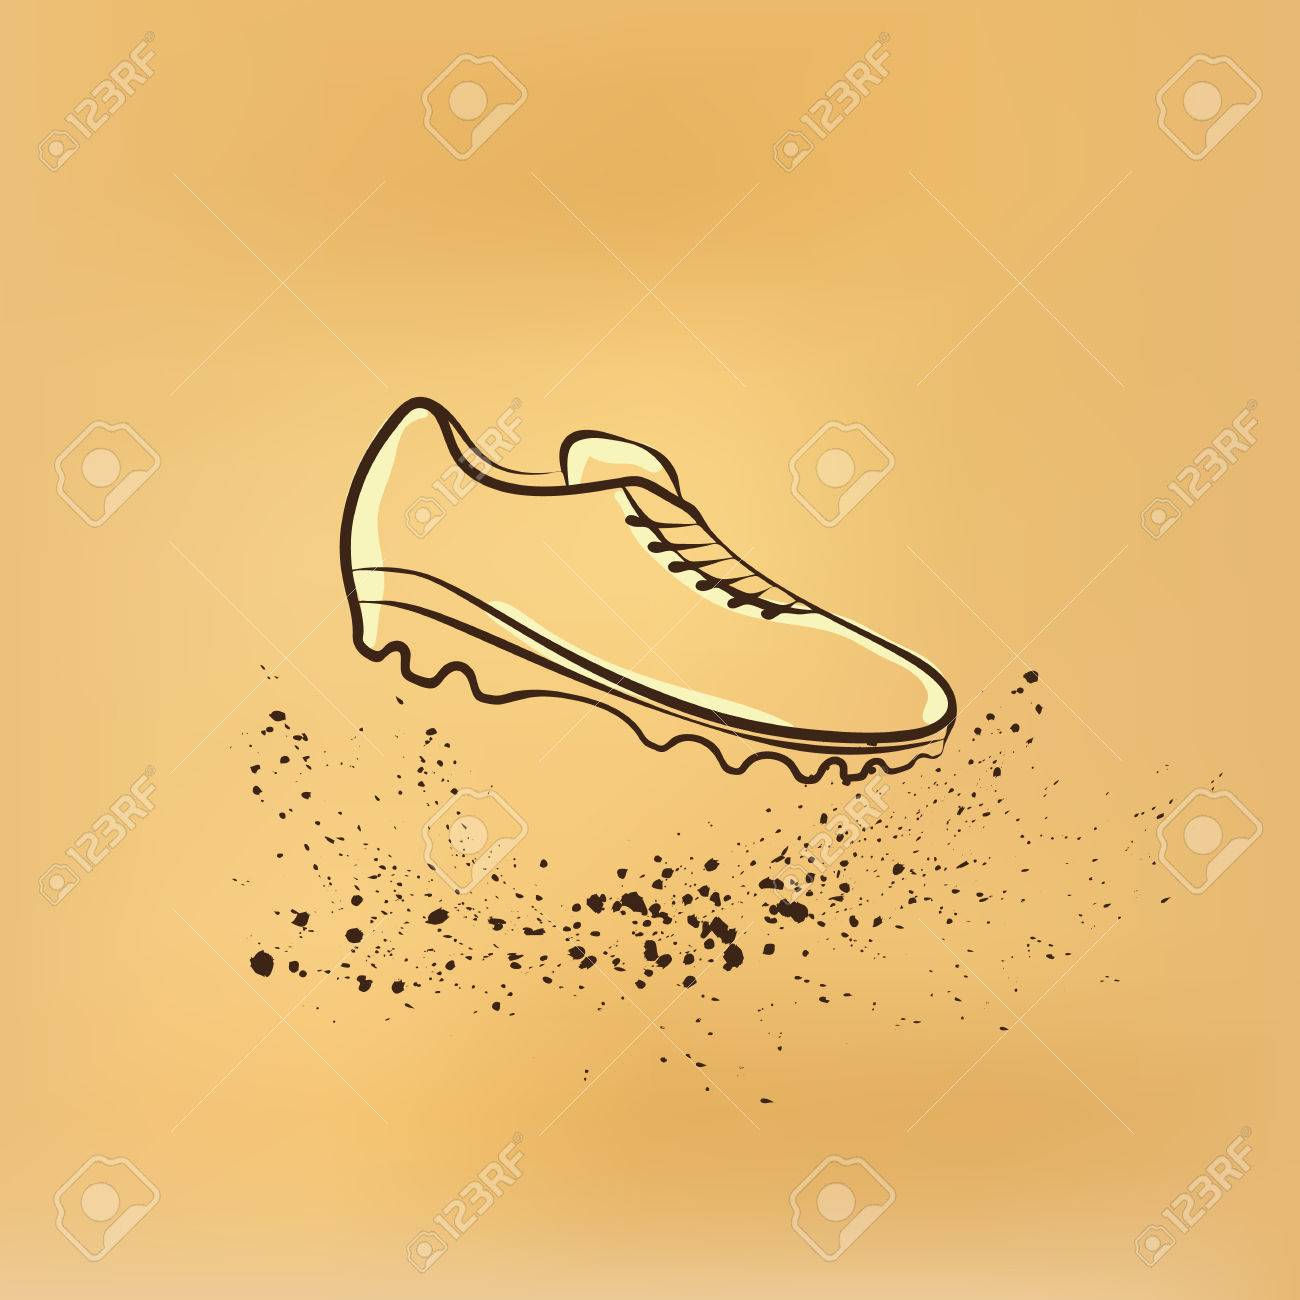 1300x1300 Soccer Shoes. Vector Retro Drawing Illustration. Royalty Free